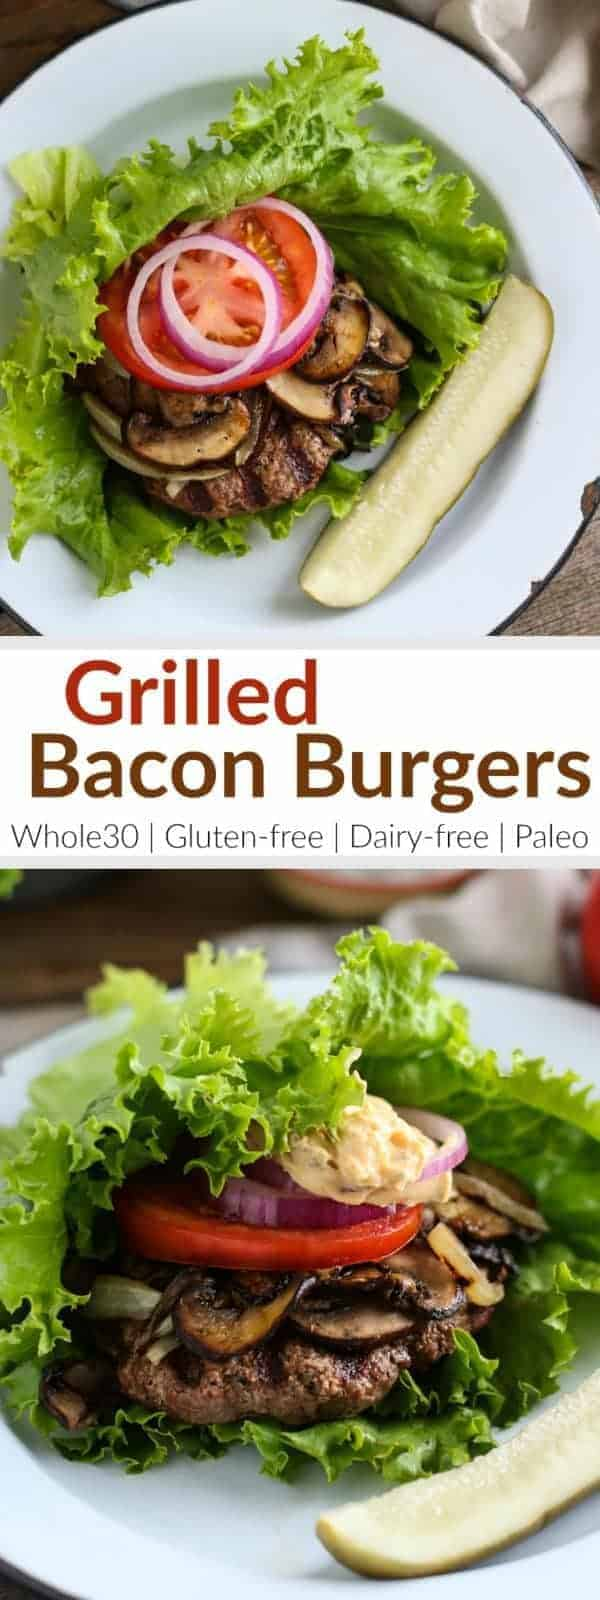 Banish boring burgers with these mouthwatering and insanely tender Grilled Bacon Burgers! | https://therealfoodrds.com/grilled-bacon-burgers/